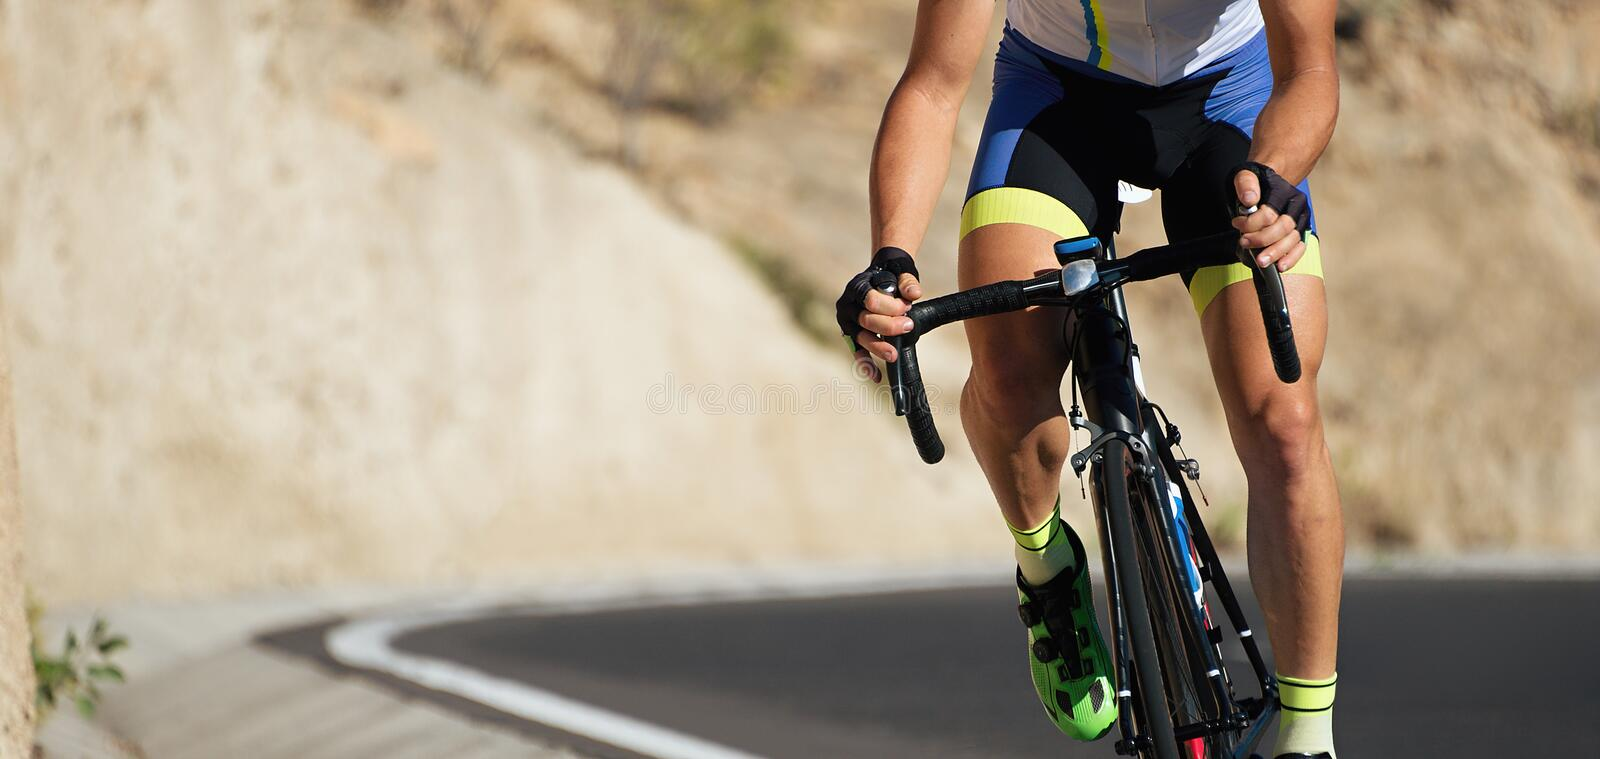 Road bike cyclist man cycling. Athlete on a race cycle stock photography